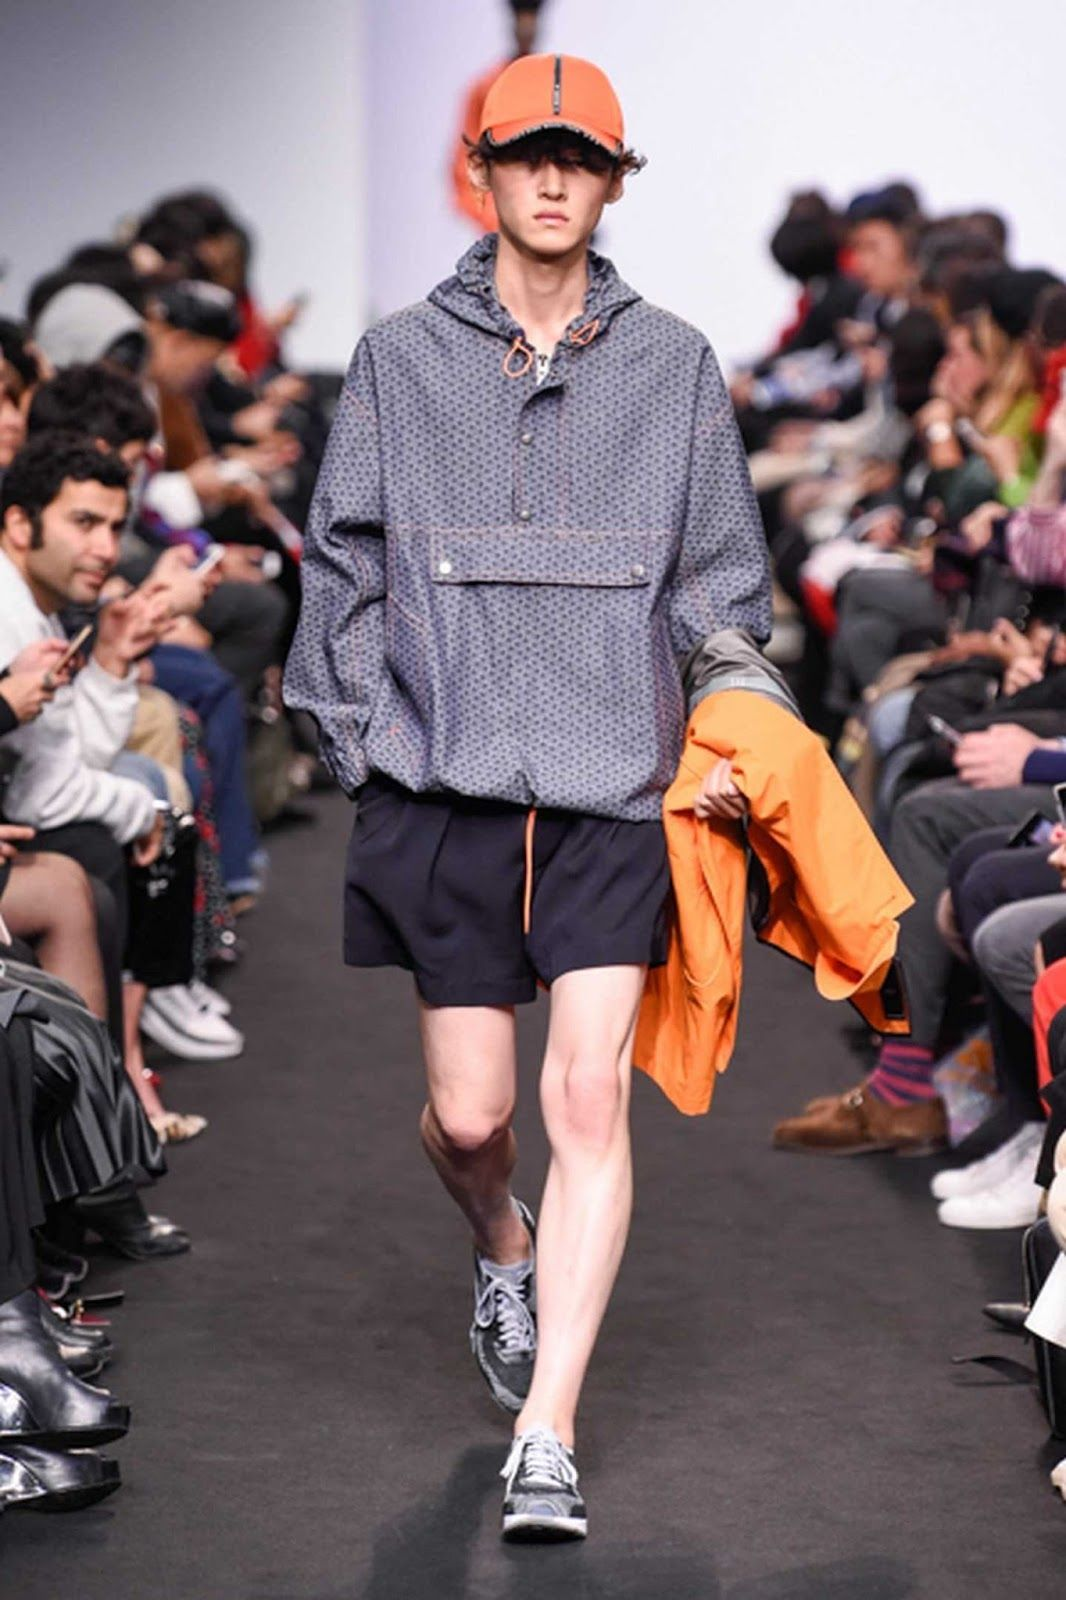 Male Fashion Trends  MÜNN Spring-Summer 2018 - Seoul Fashion Week a1b8eb635bb